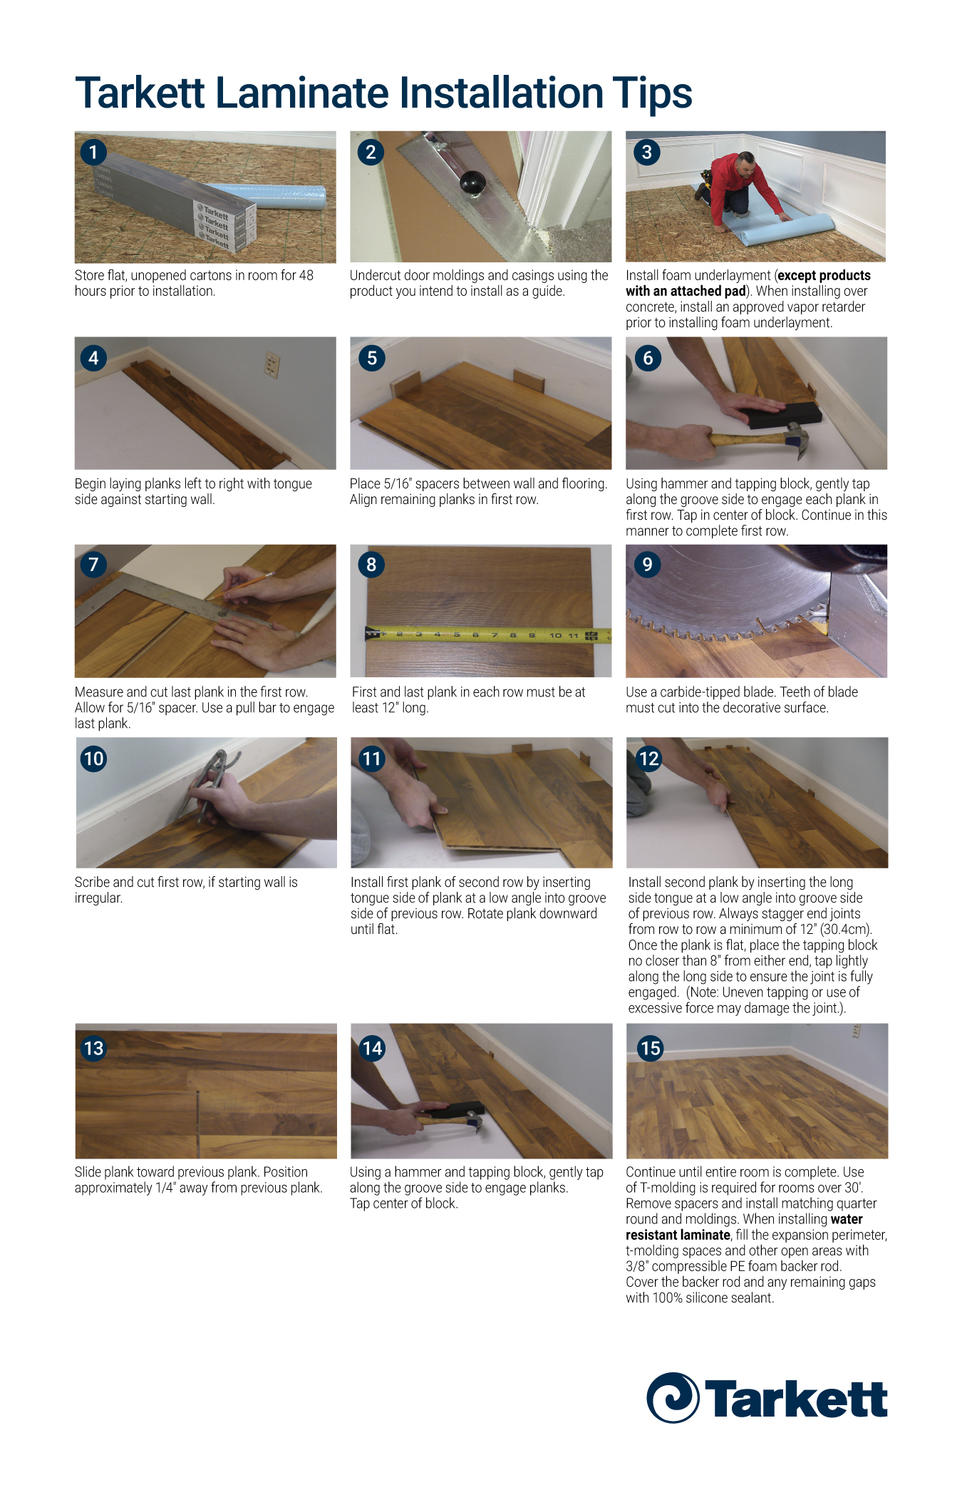 DIY Laminate Installation Tips: Step-by-Step